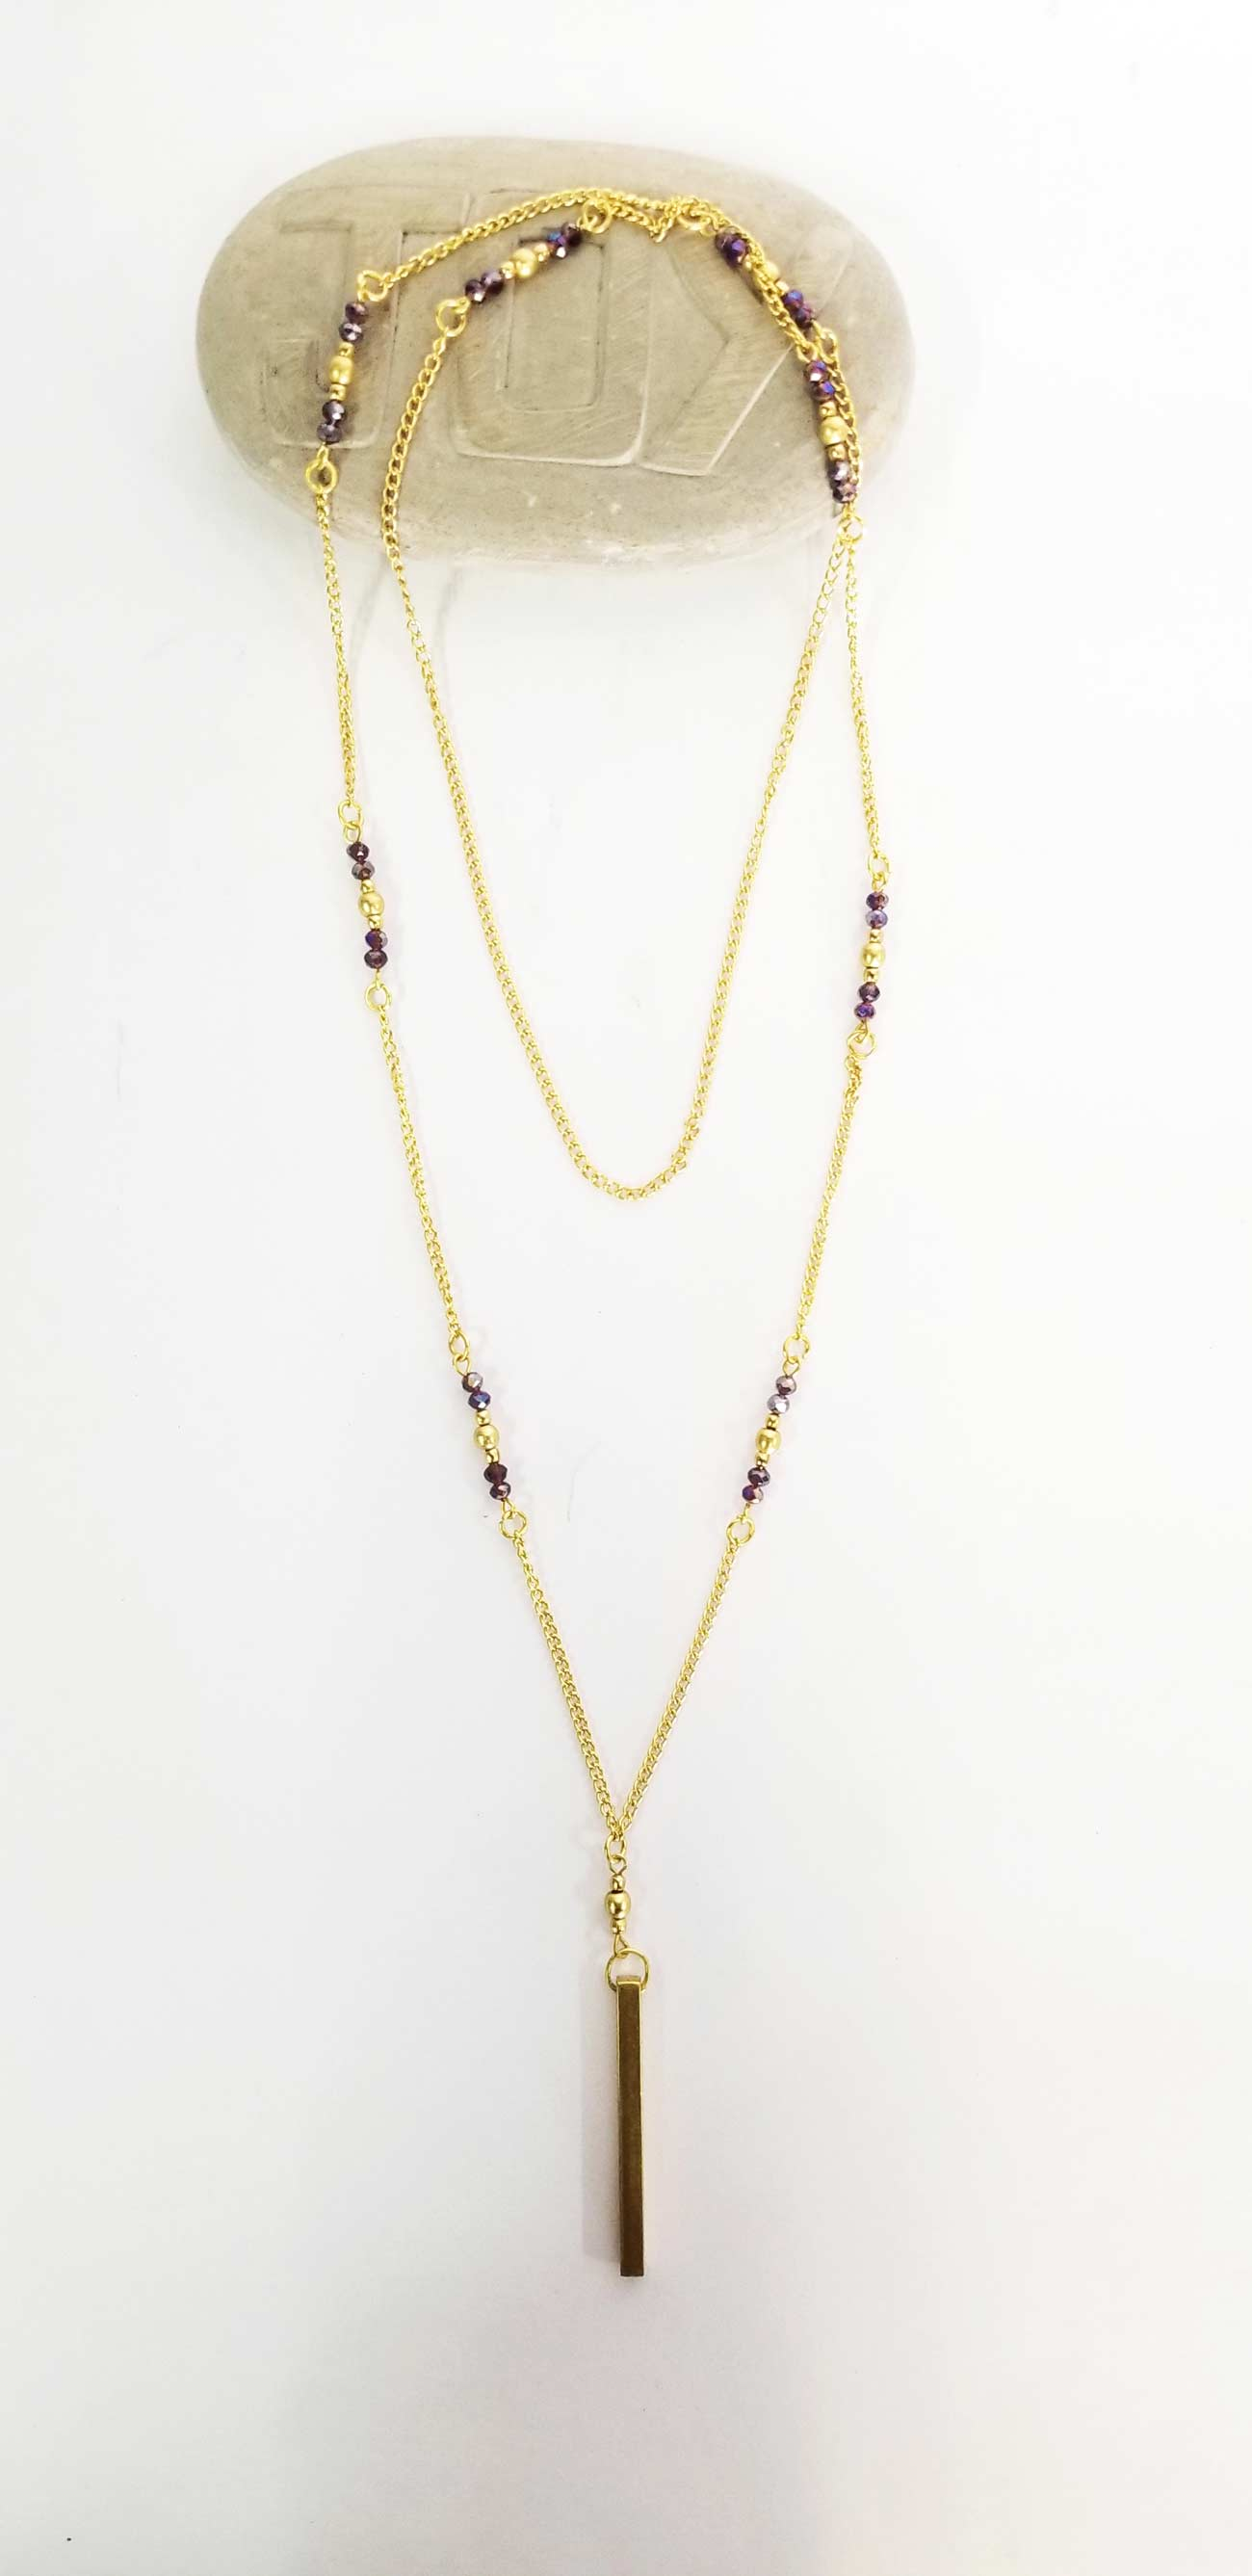 Accessories | Mala | Long Necklace Purple Beads